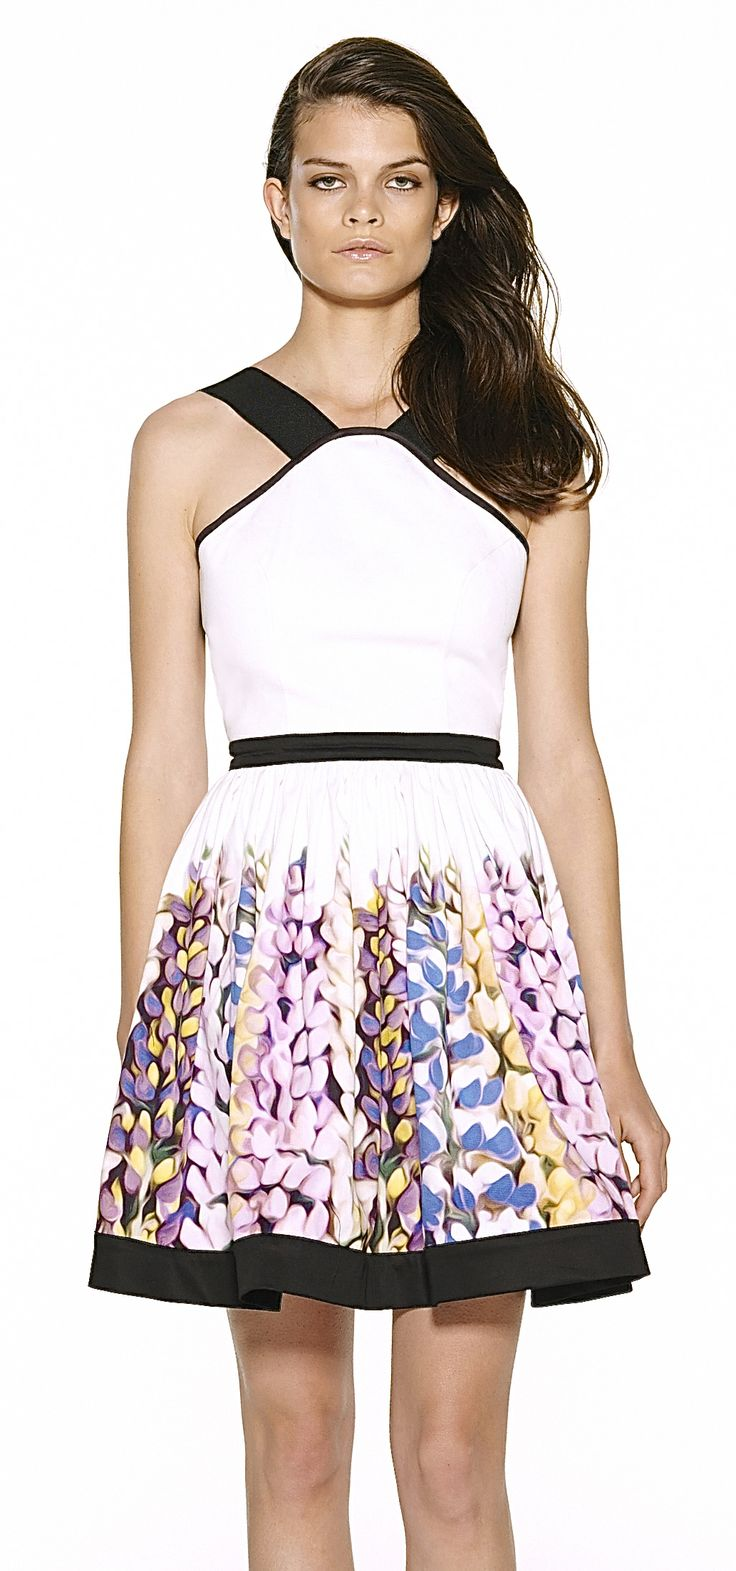 Sublime flower dress by ALICE McCALL  SOON on THETENDANCE.COM